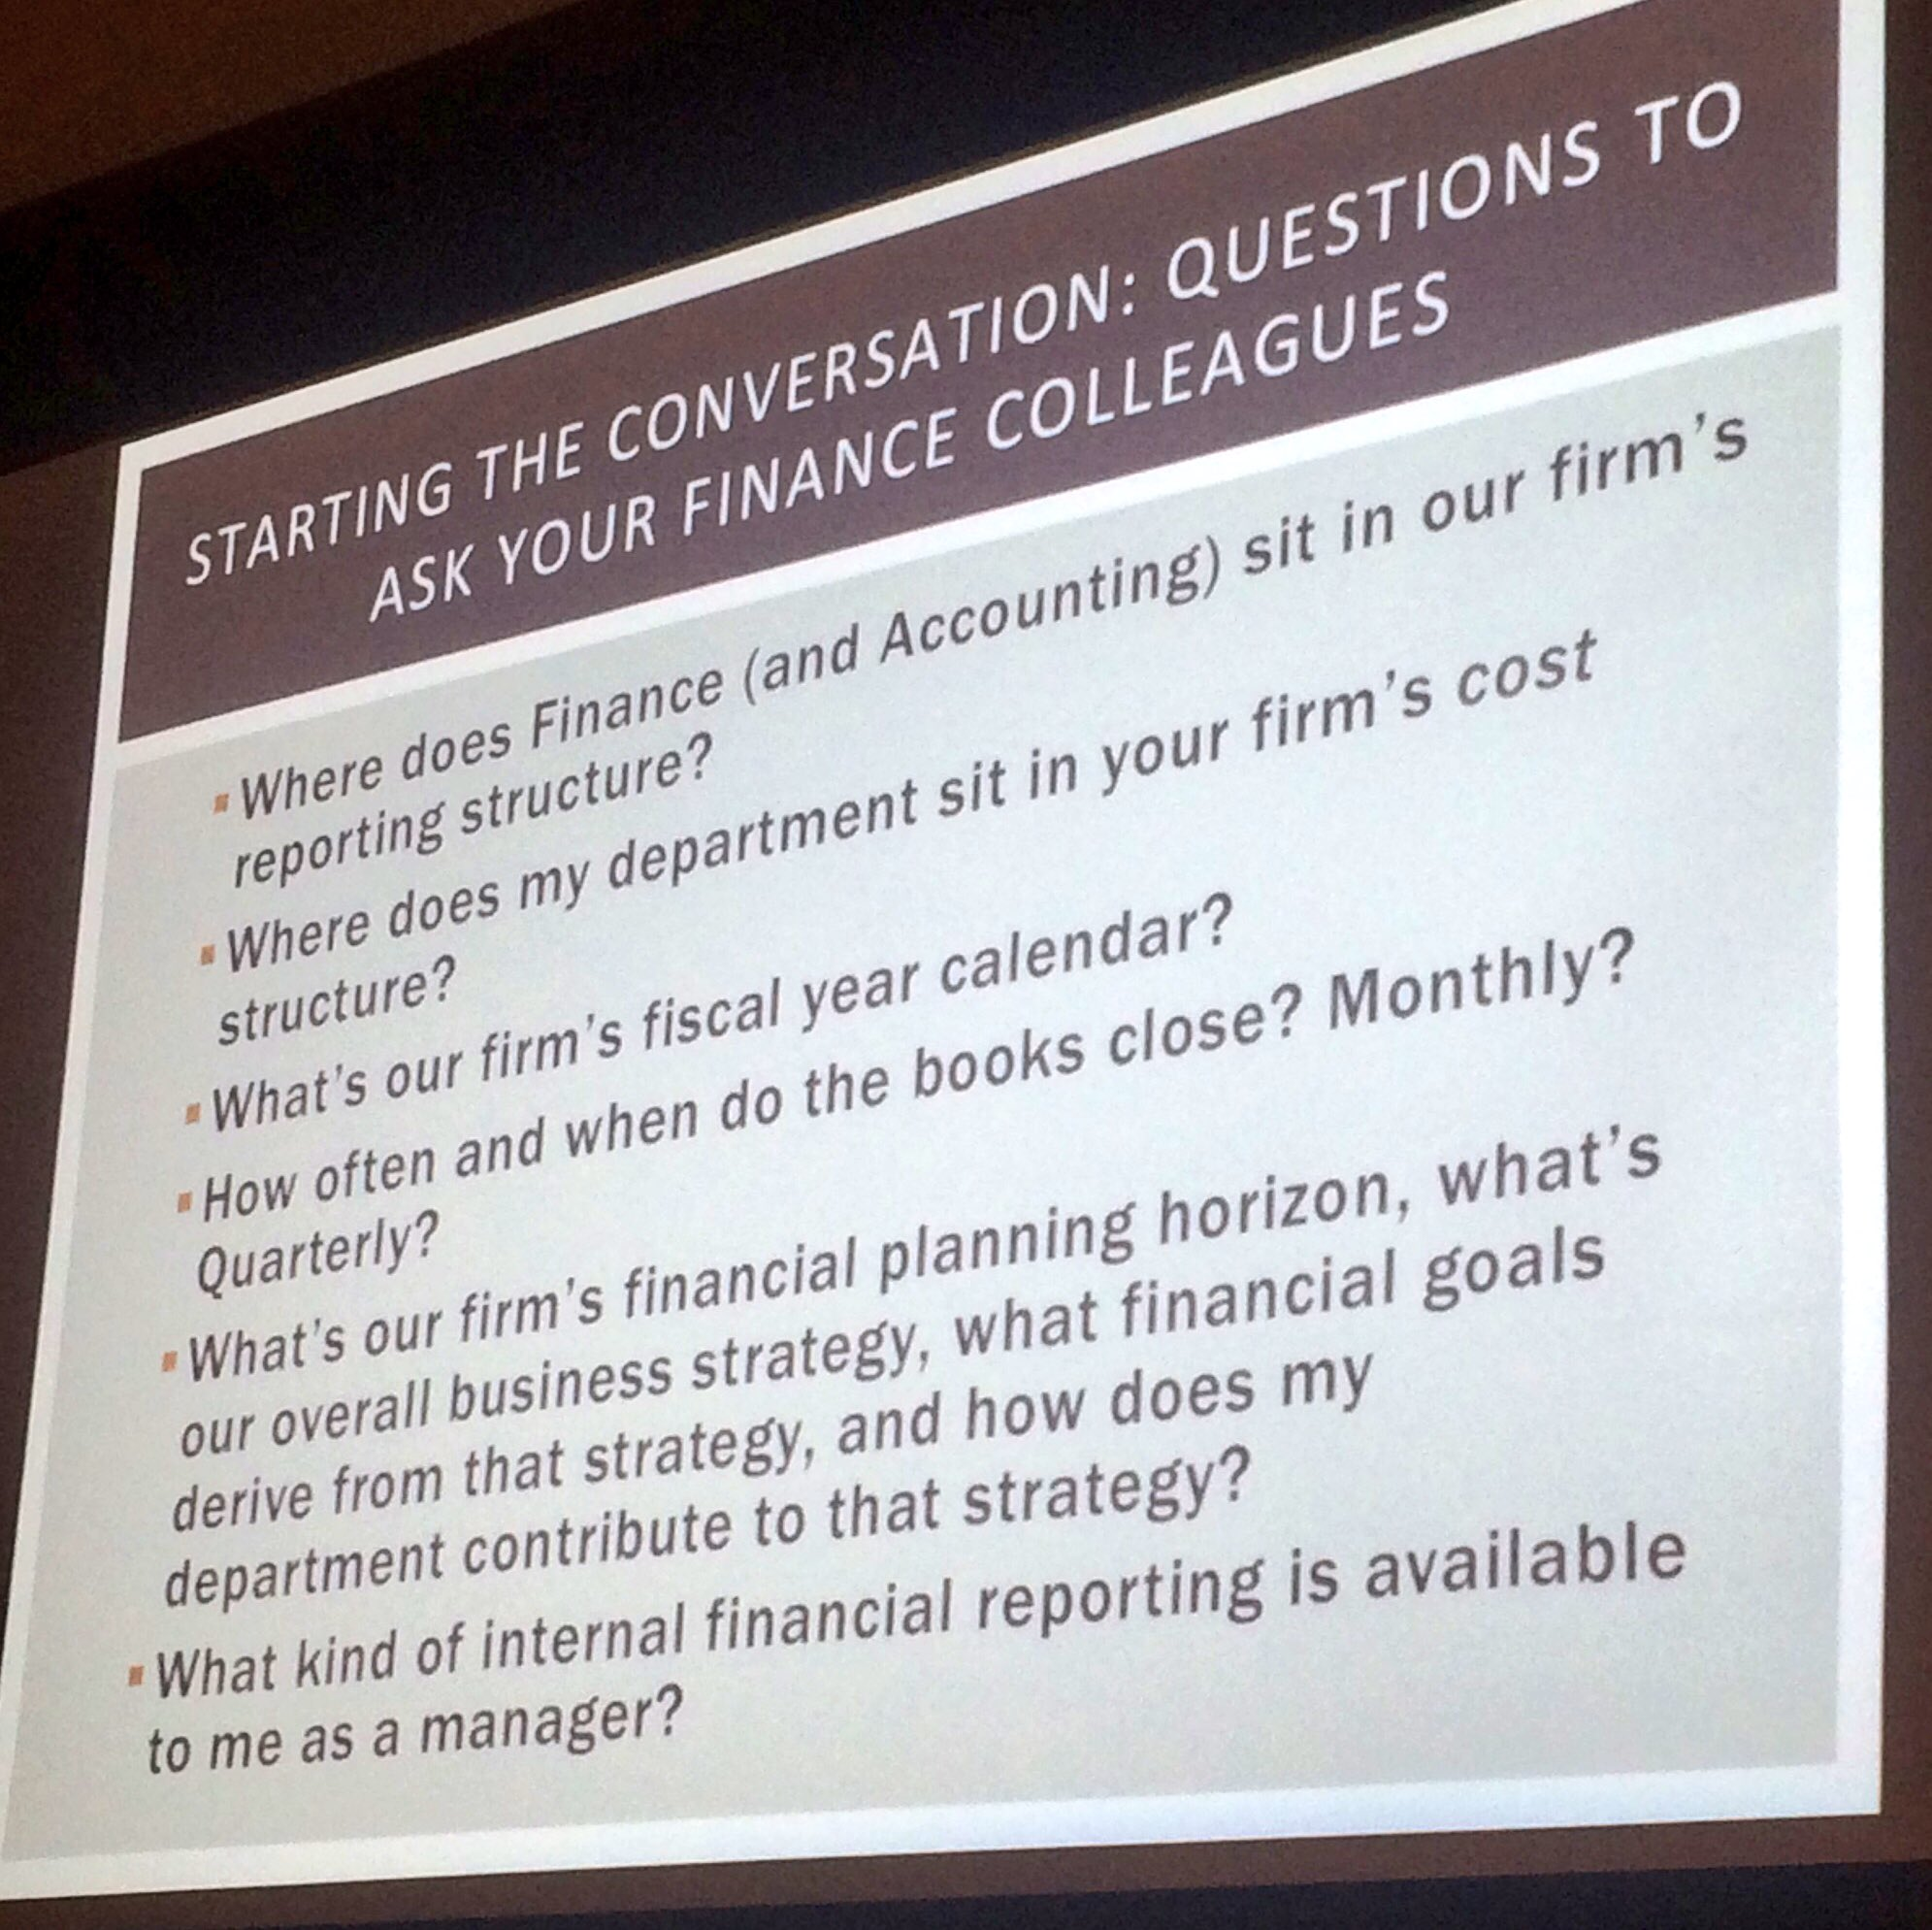 If you're in-house, here are the questions you should ask your finance colleagues. -Claudia McCowan #MoneyMatters https://t.co/Lh8bOtVykq